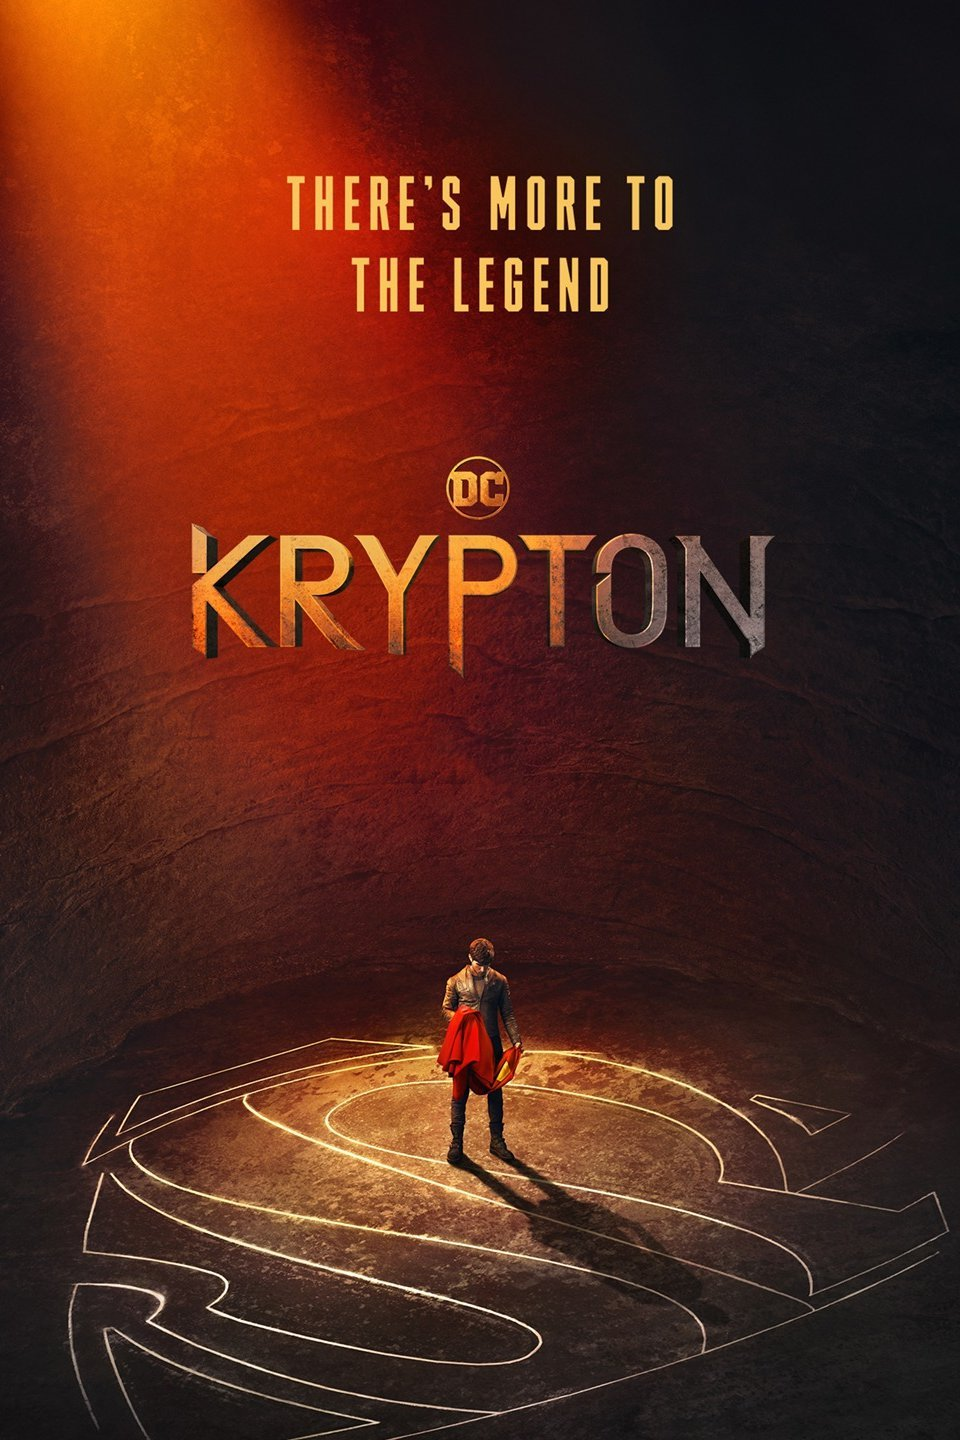 Krypton Season 1 Episode 1 Download HDTV 480p 720p